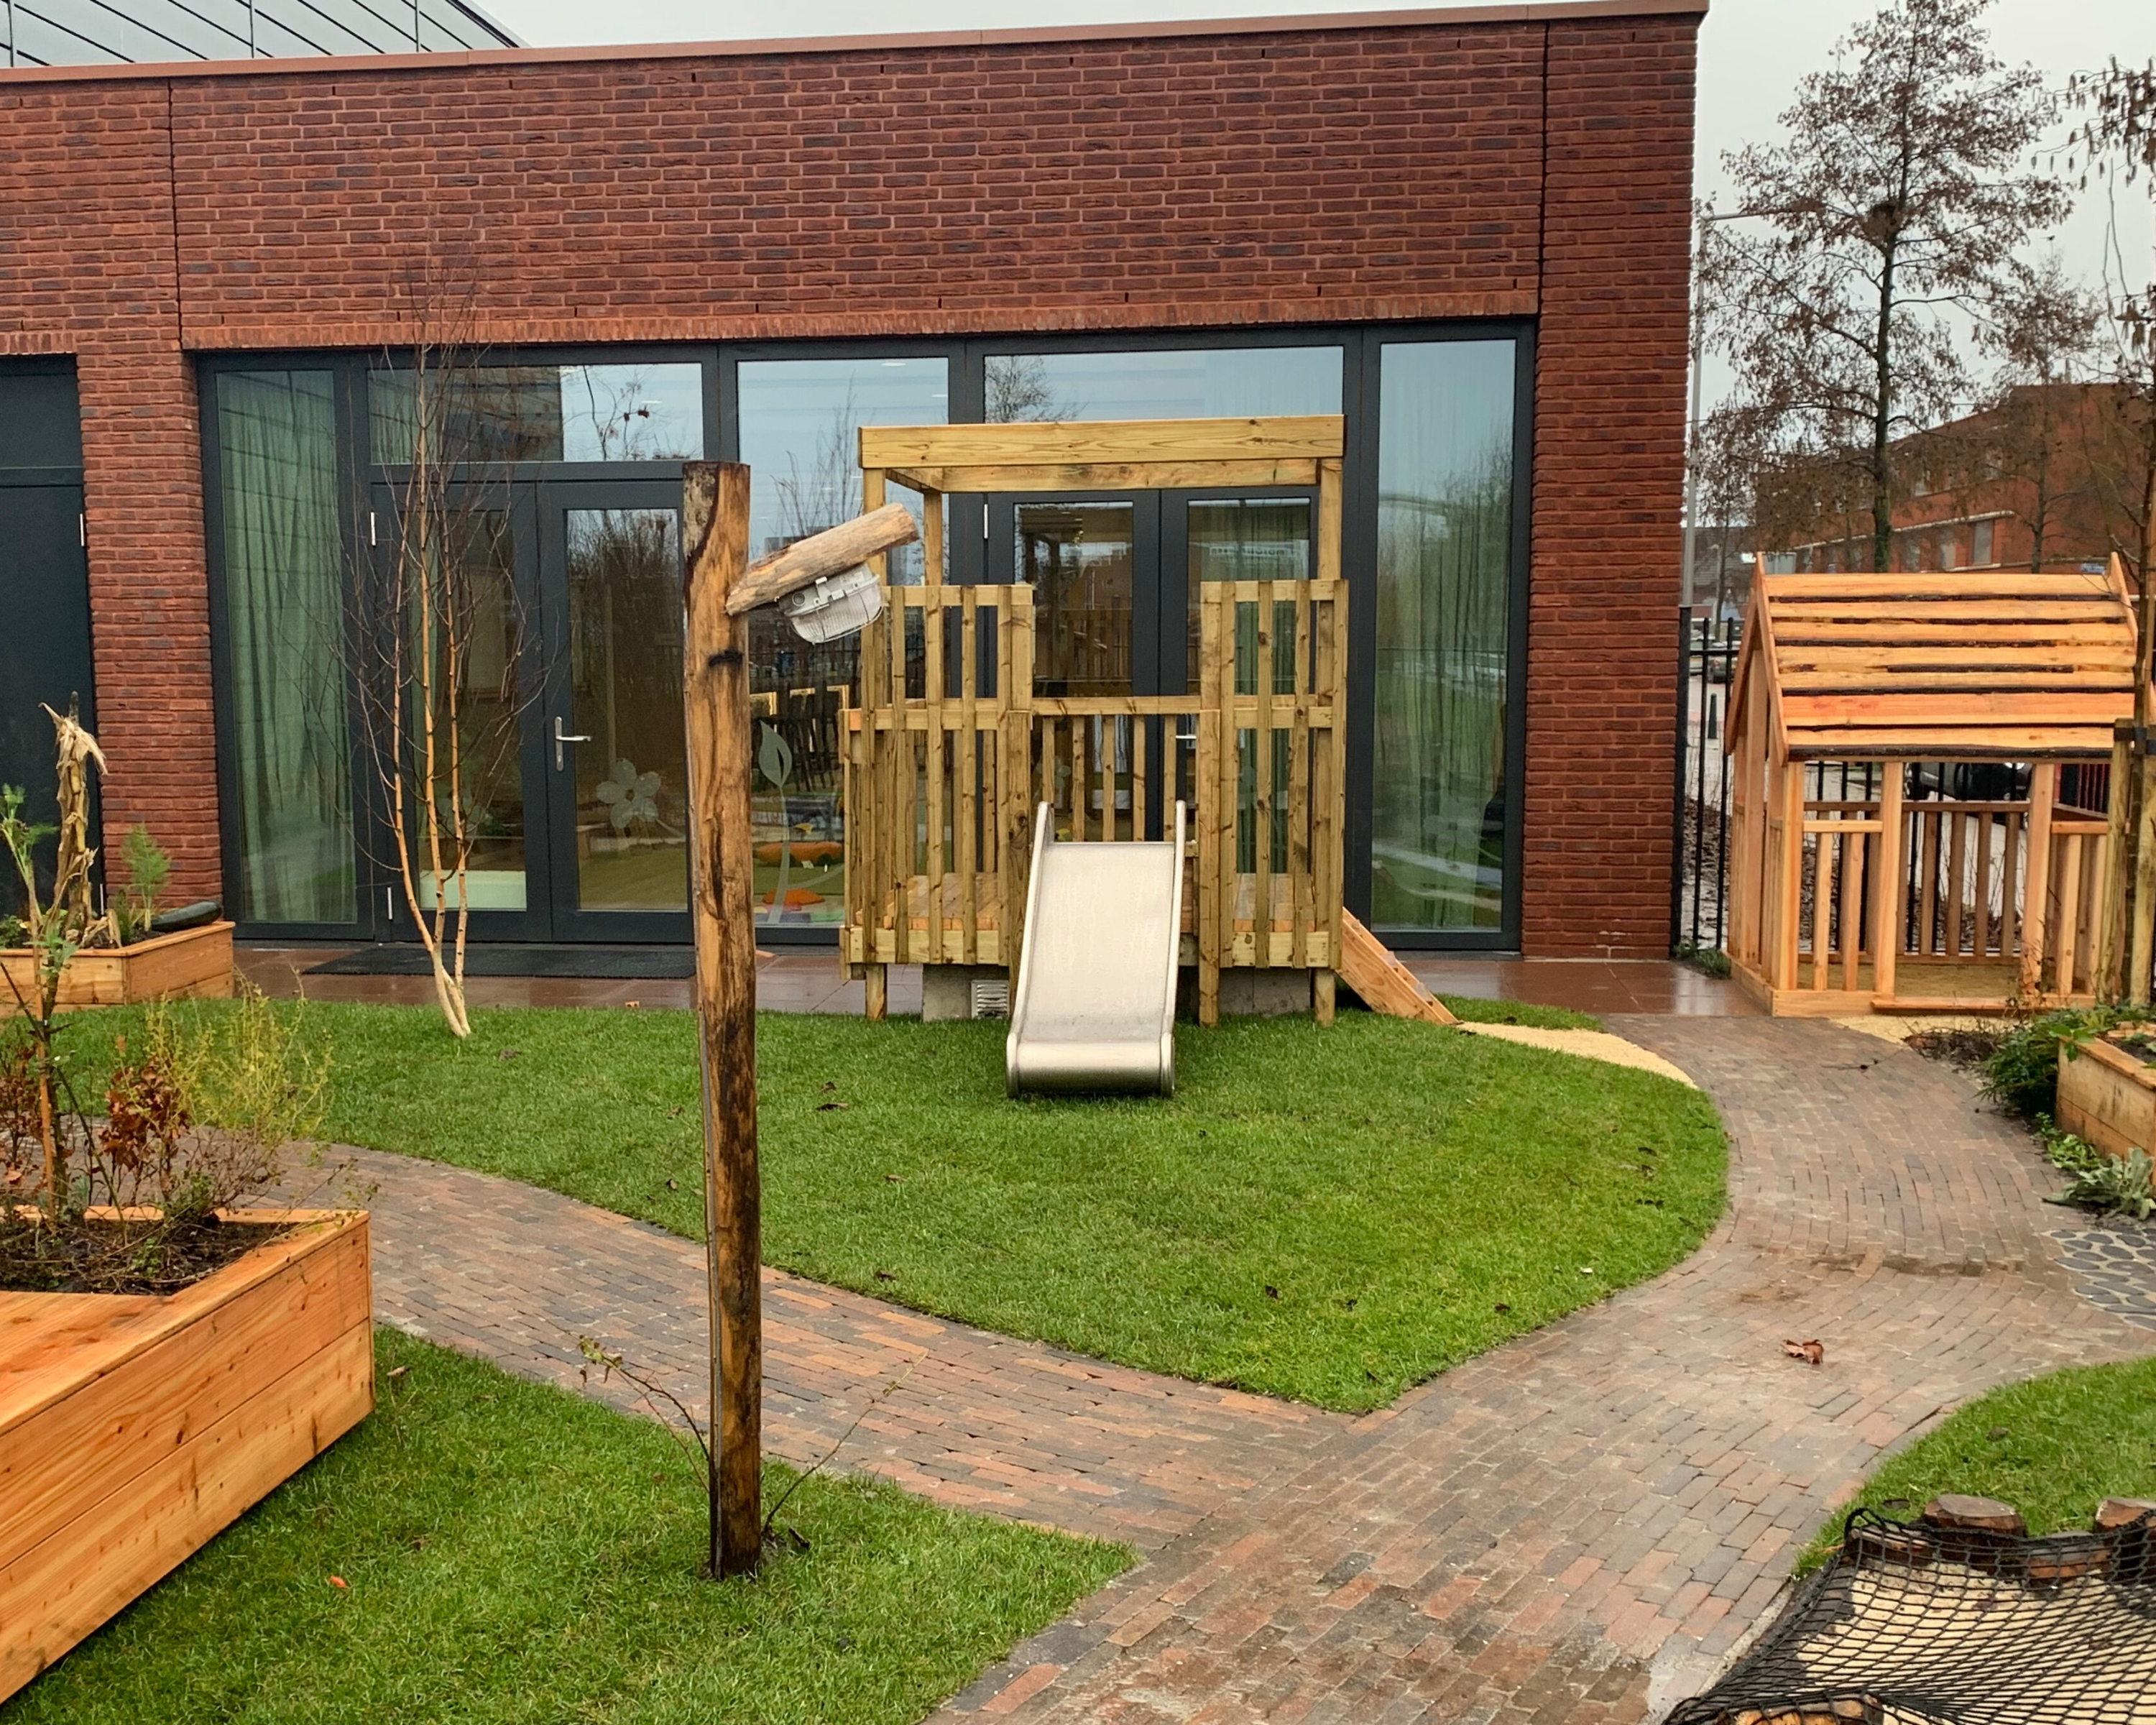 Landscaped garden for day care play and learning.